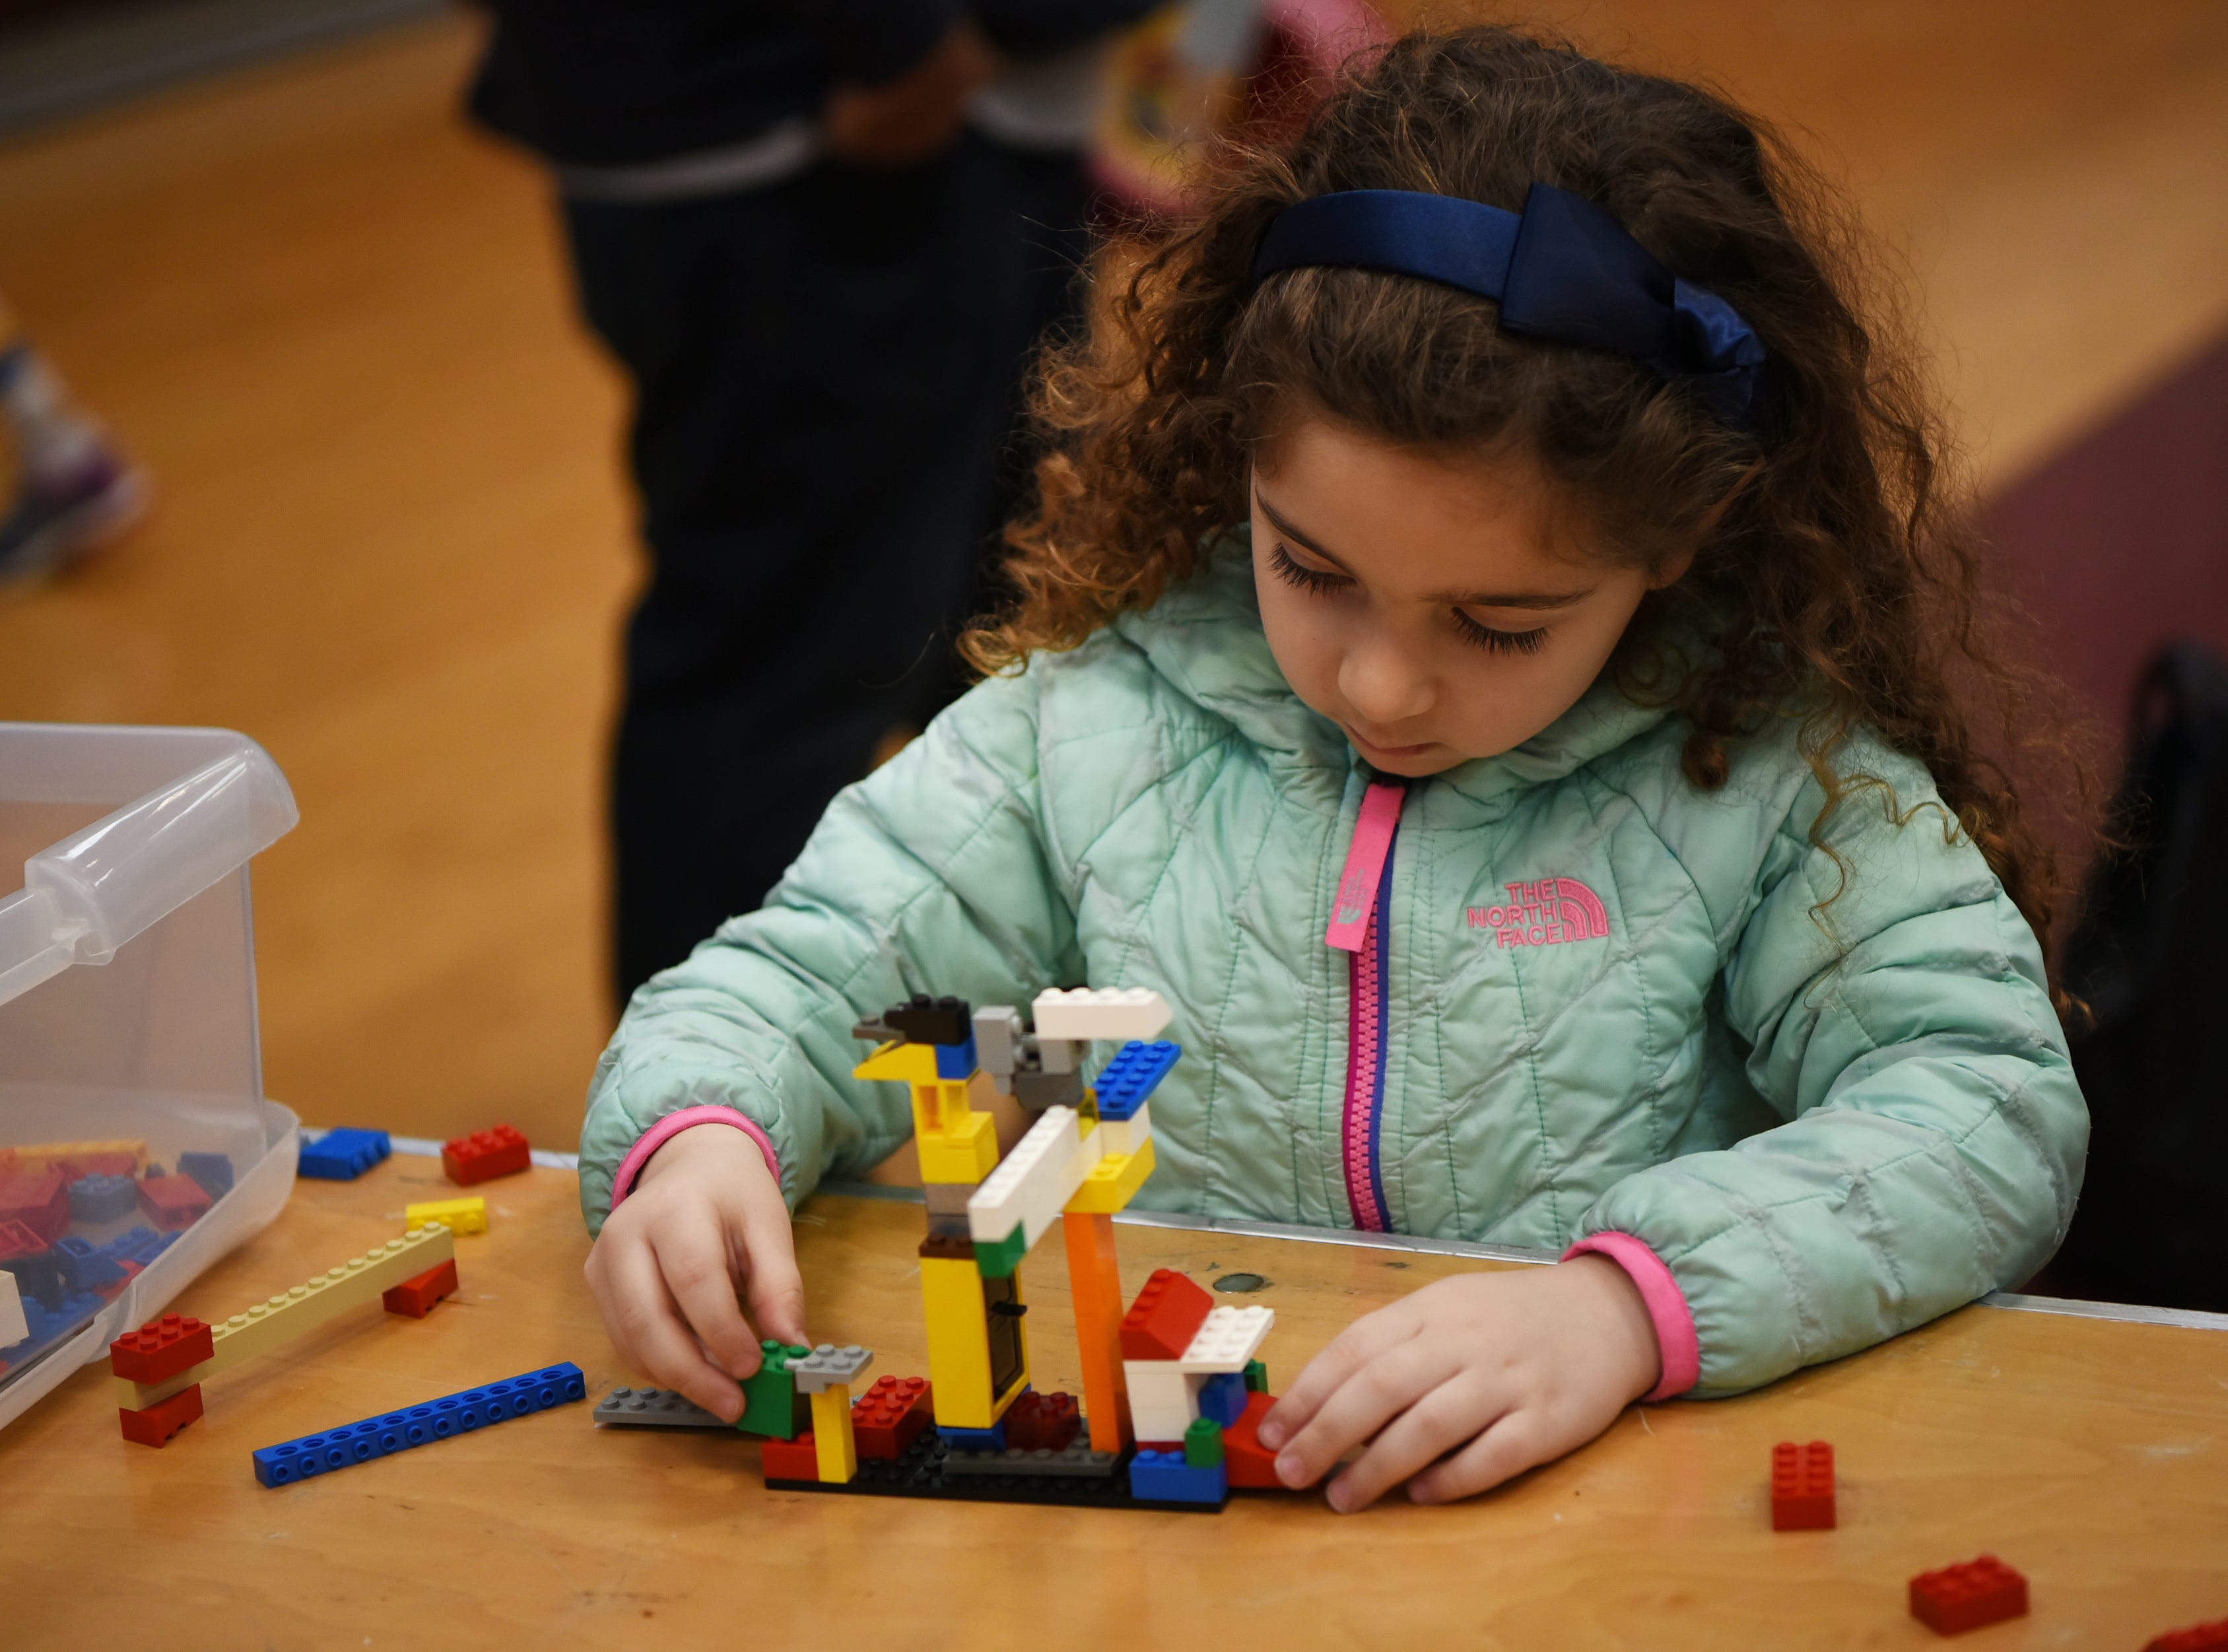 Genevieve Tavani, 4 plays with LEGO blocks. This is one of many activities during Super Science Saturday held at Ridgewood High School in Ridgewood on Saturday March 2, 2019.